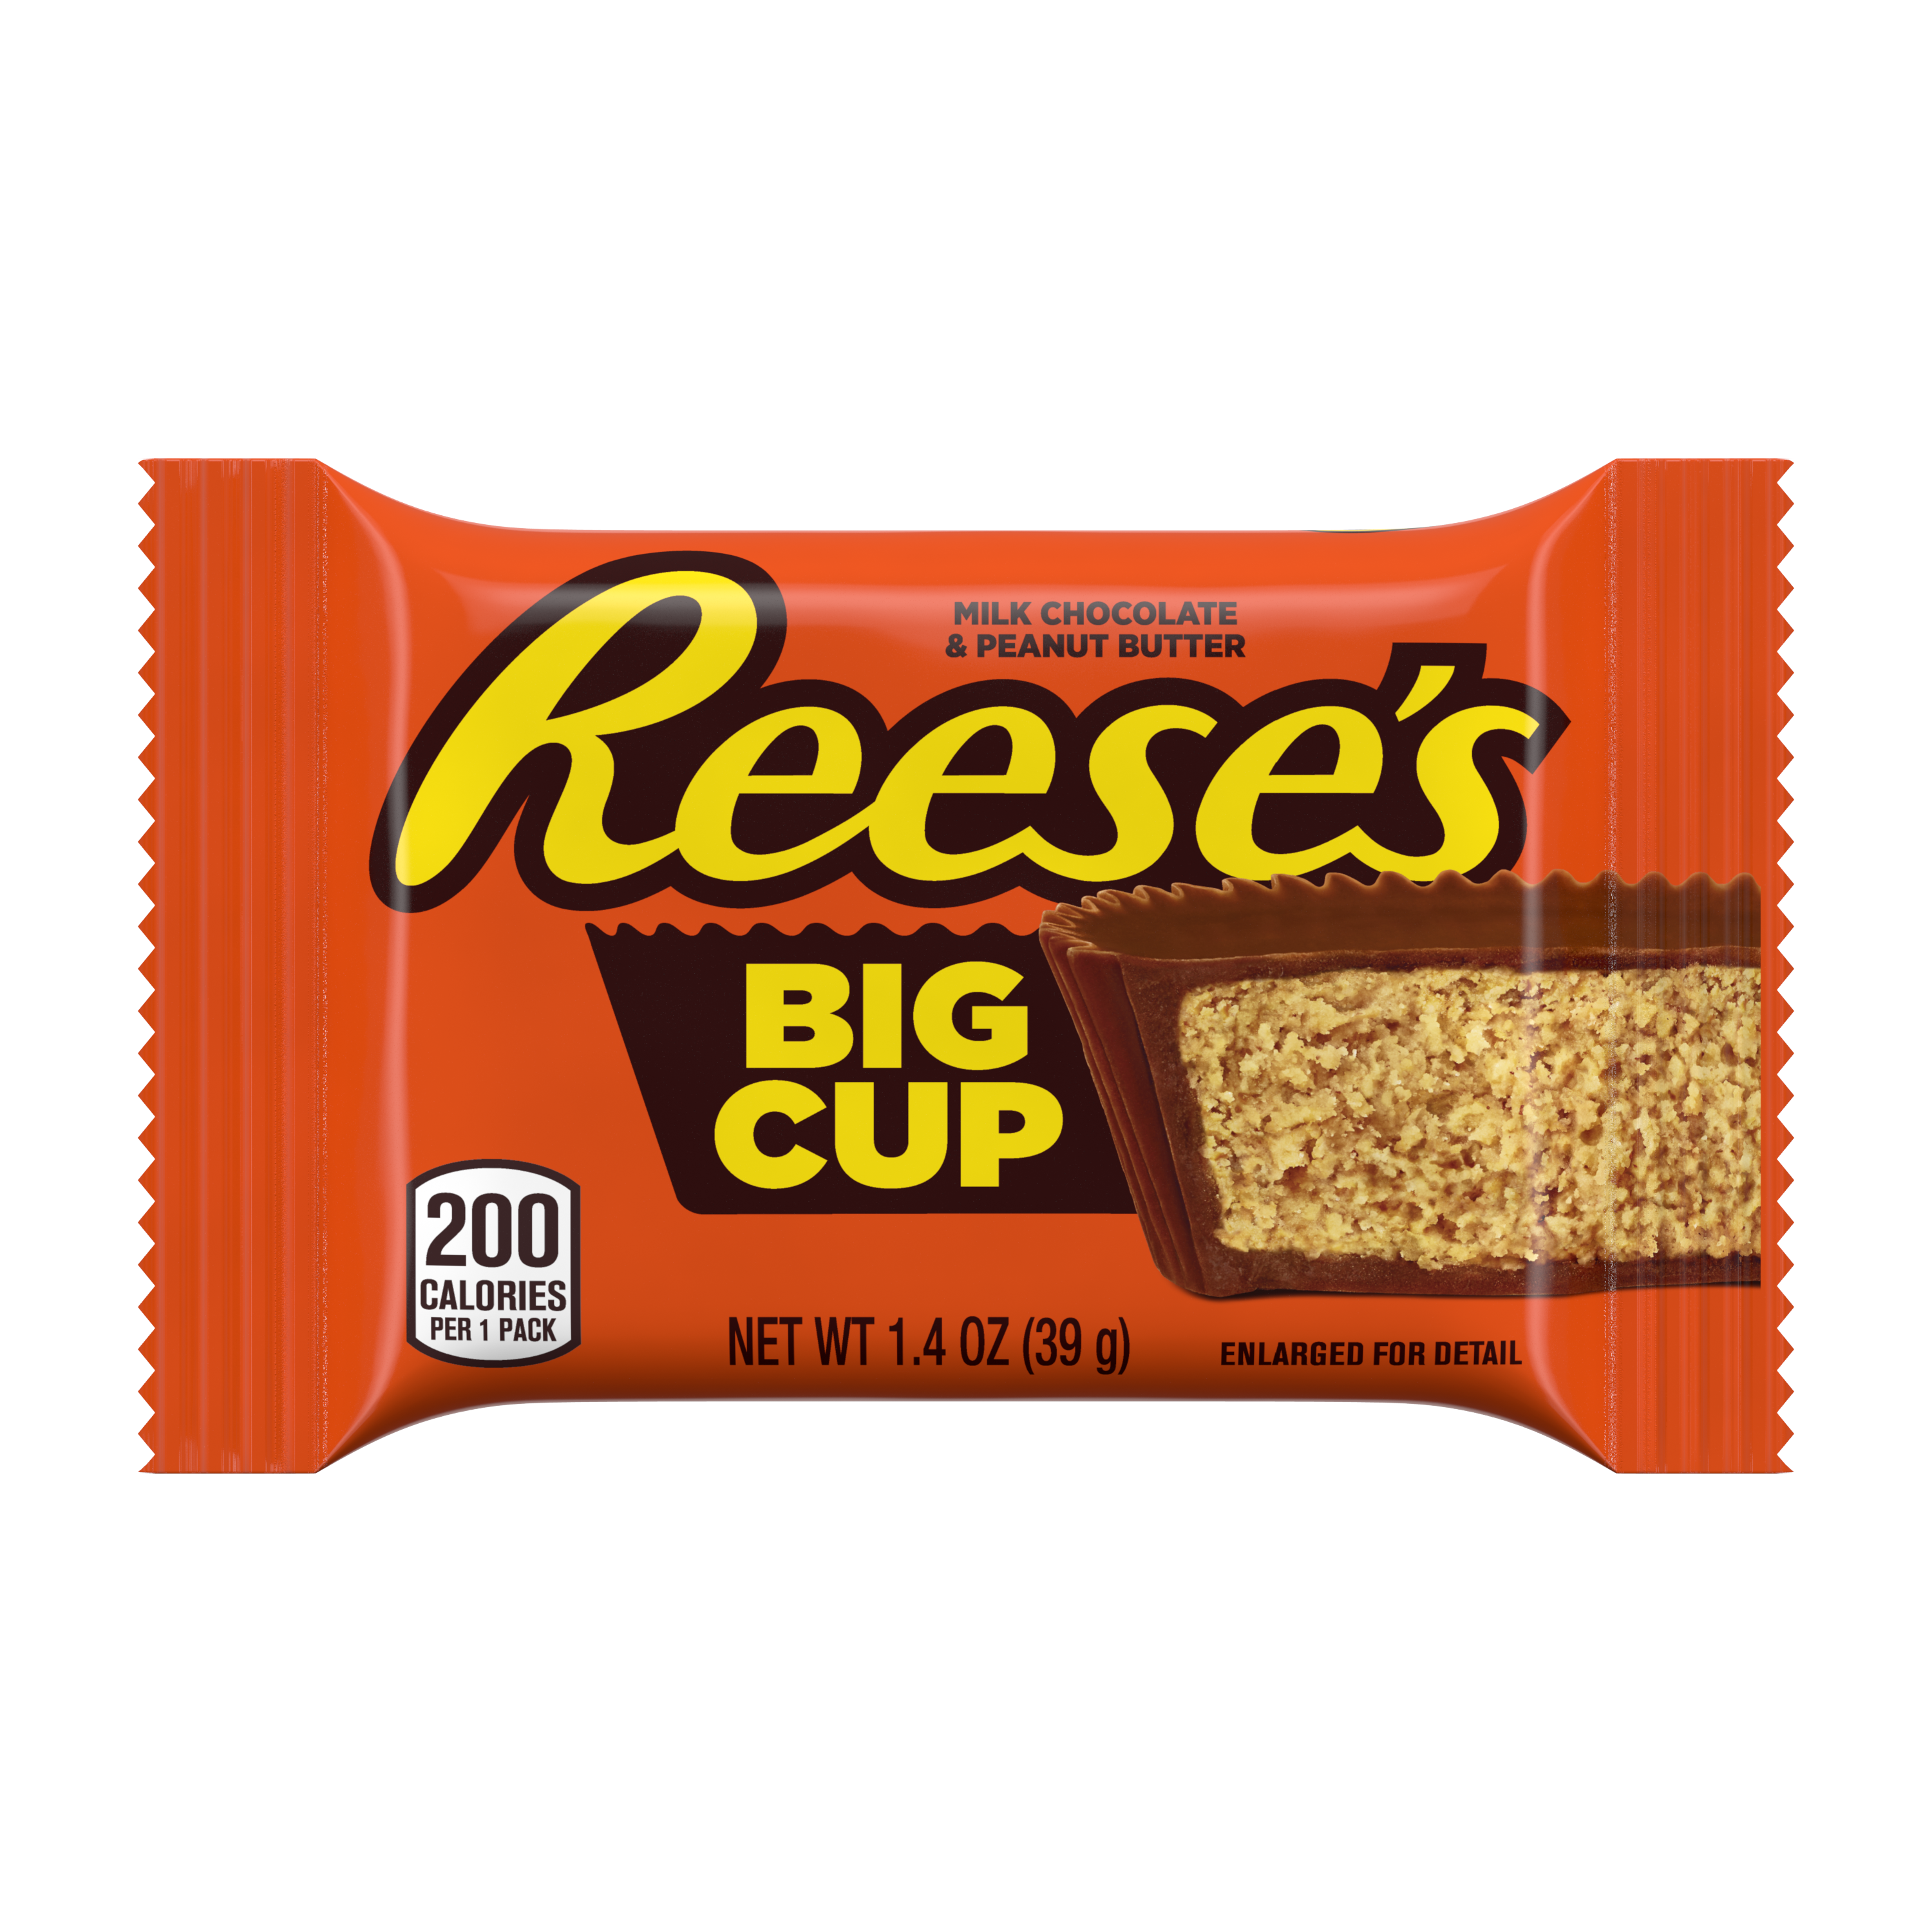 REESE'S Big Cup Milk Chocolate Peanut Butter Cup, 1.4 oz - Front of Package